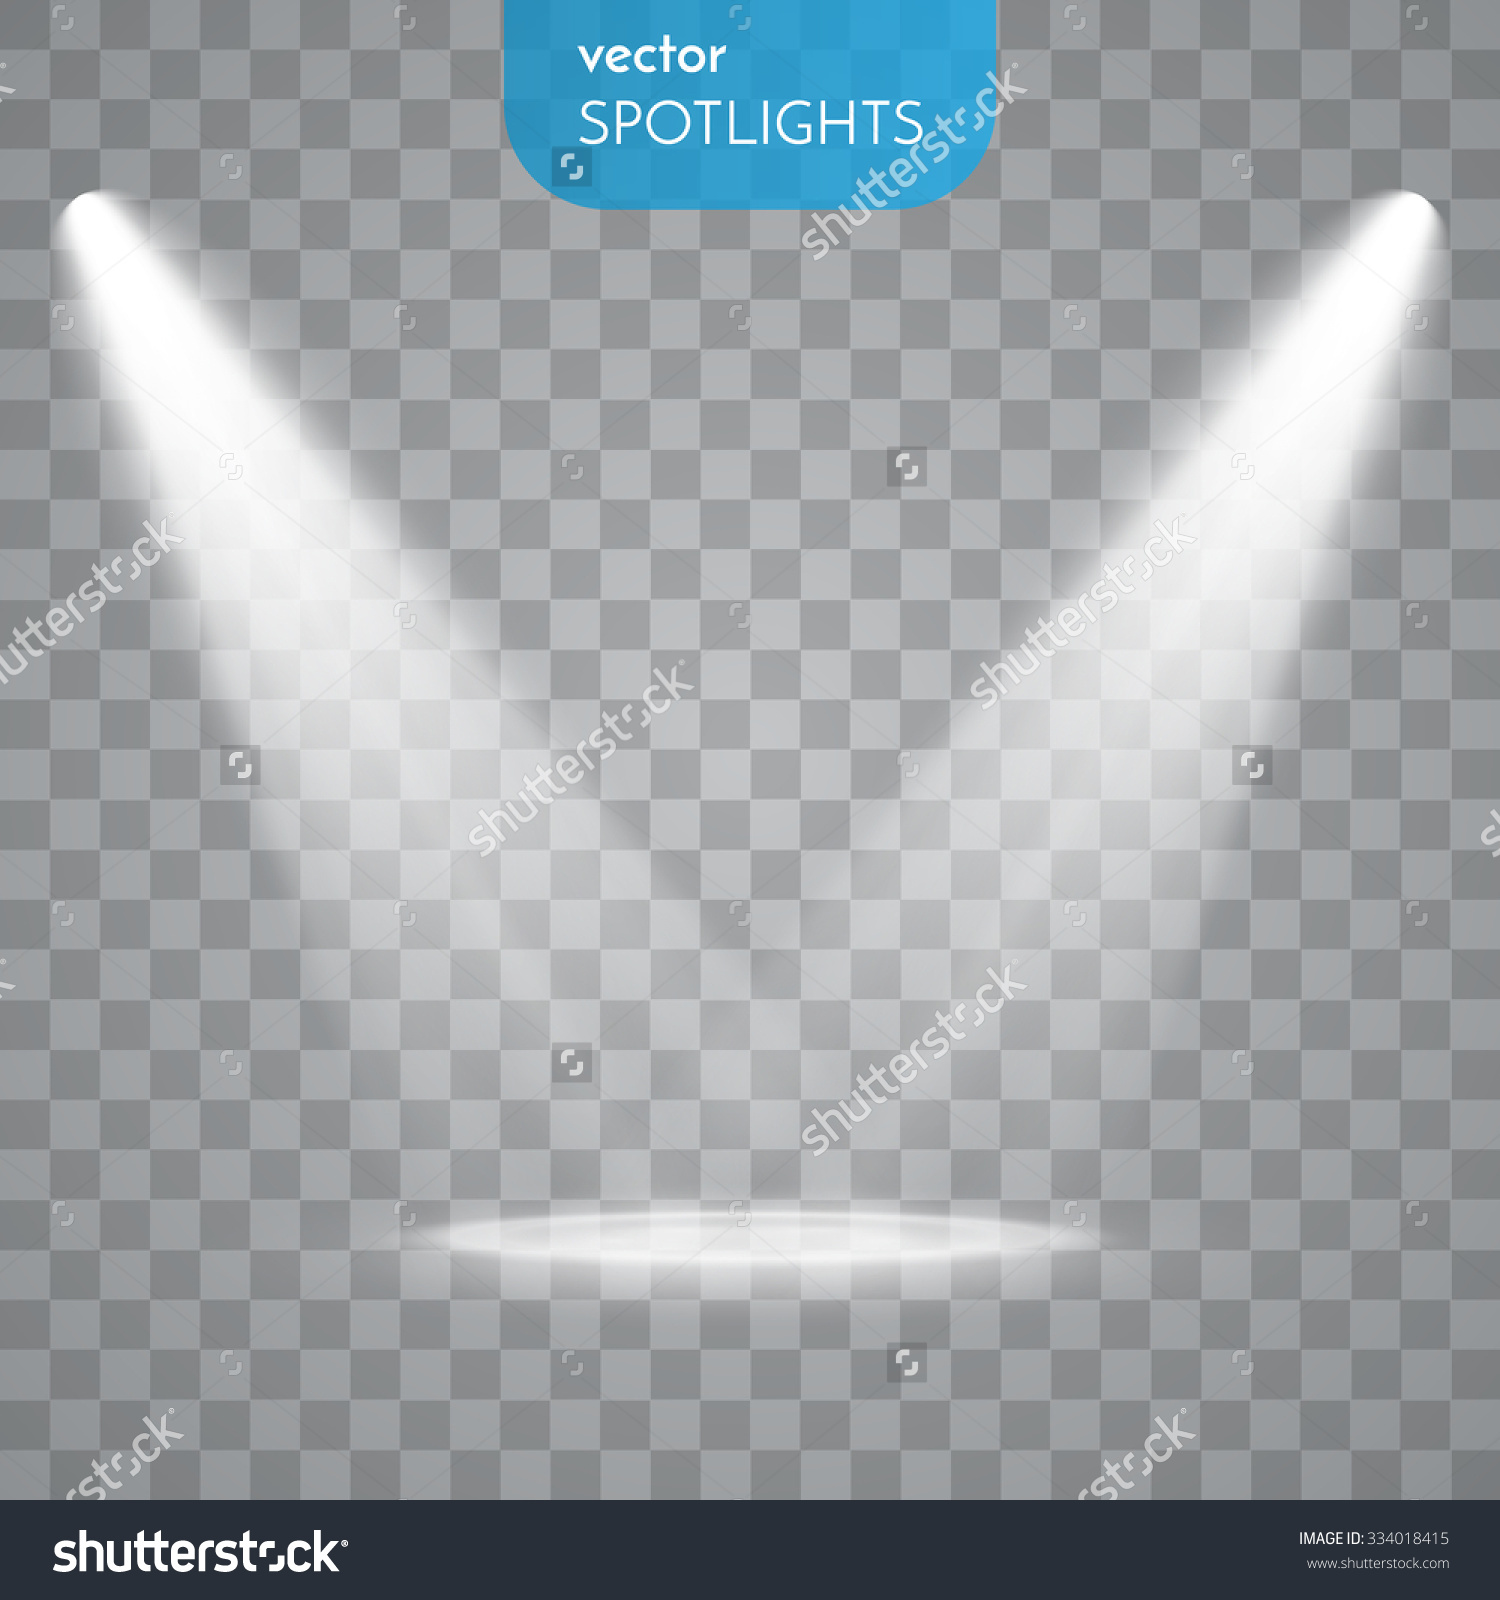 Vector Spotlights Scene Light Effects Stock Vector 334018415.